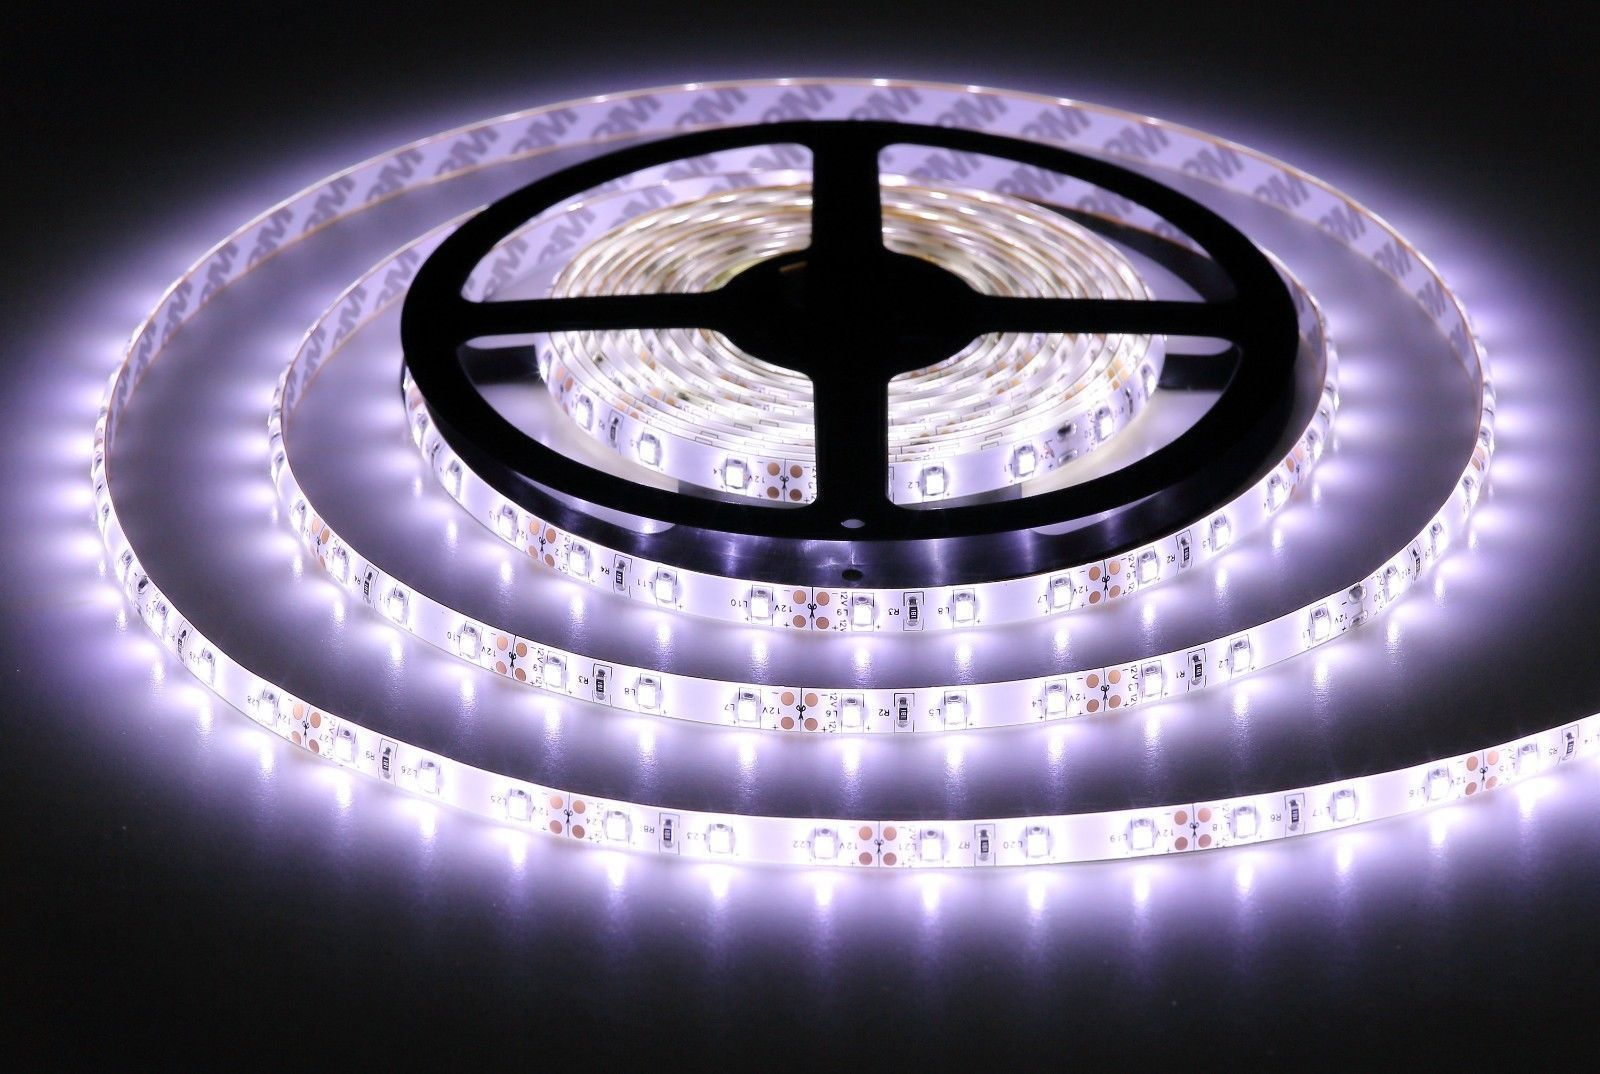 New Waterproof Flexible 12v Led Strip Lights 3528 Smd Cool